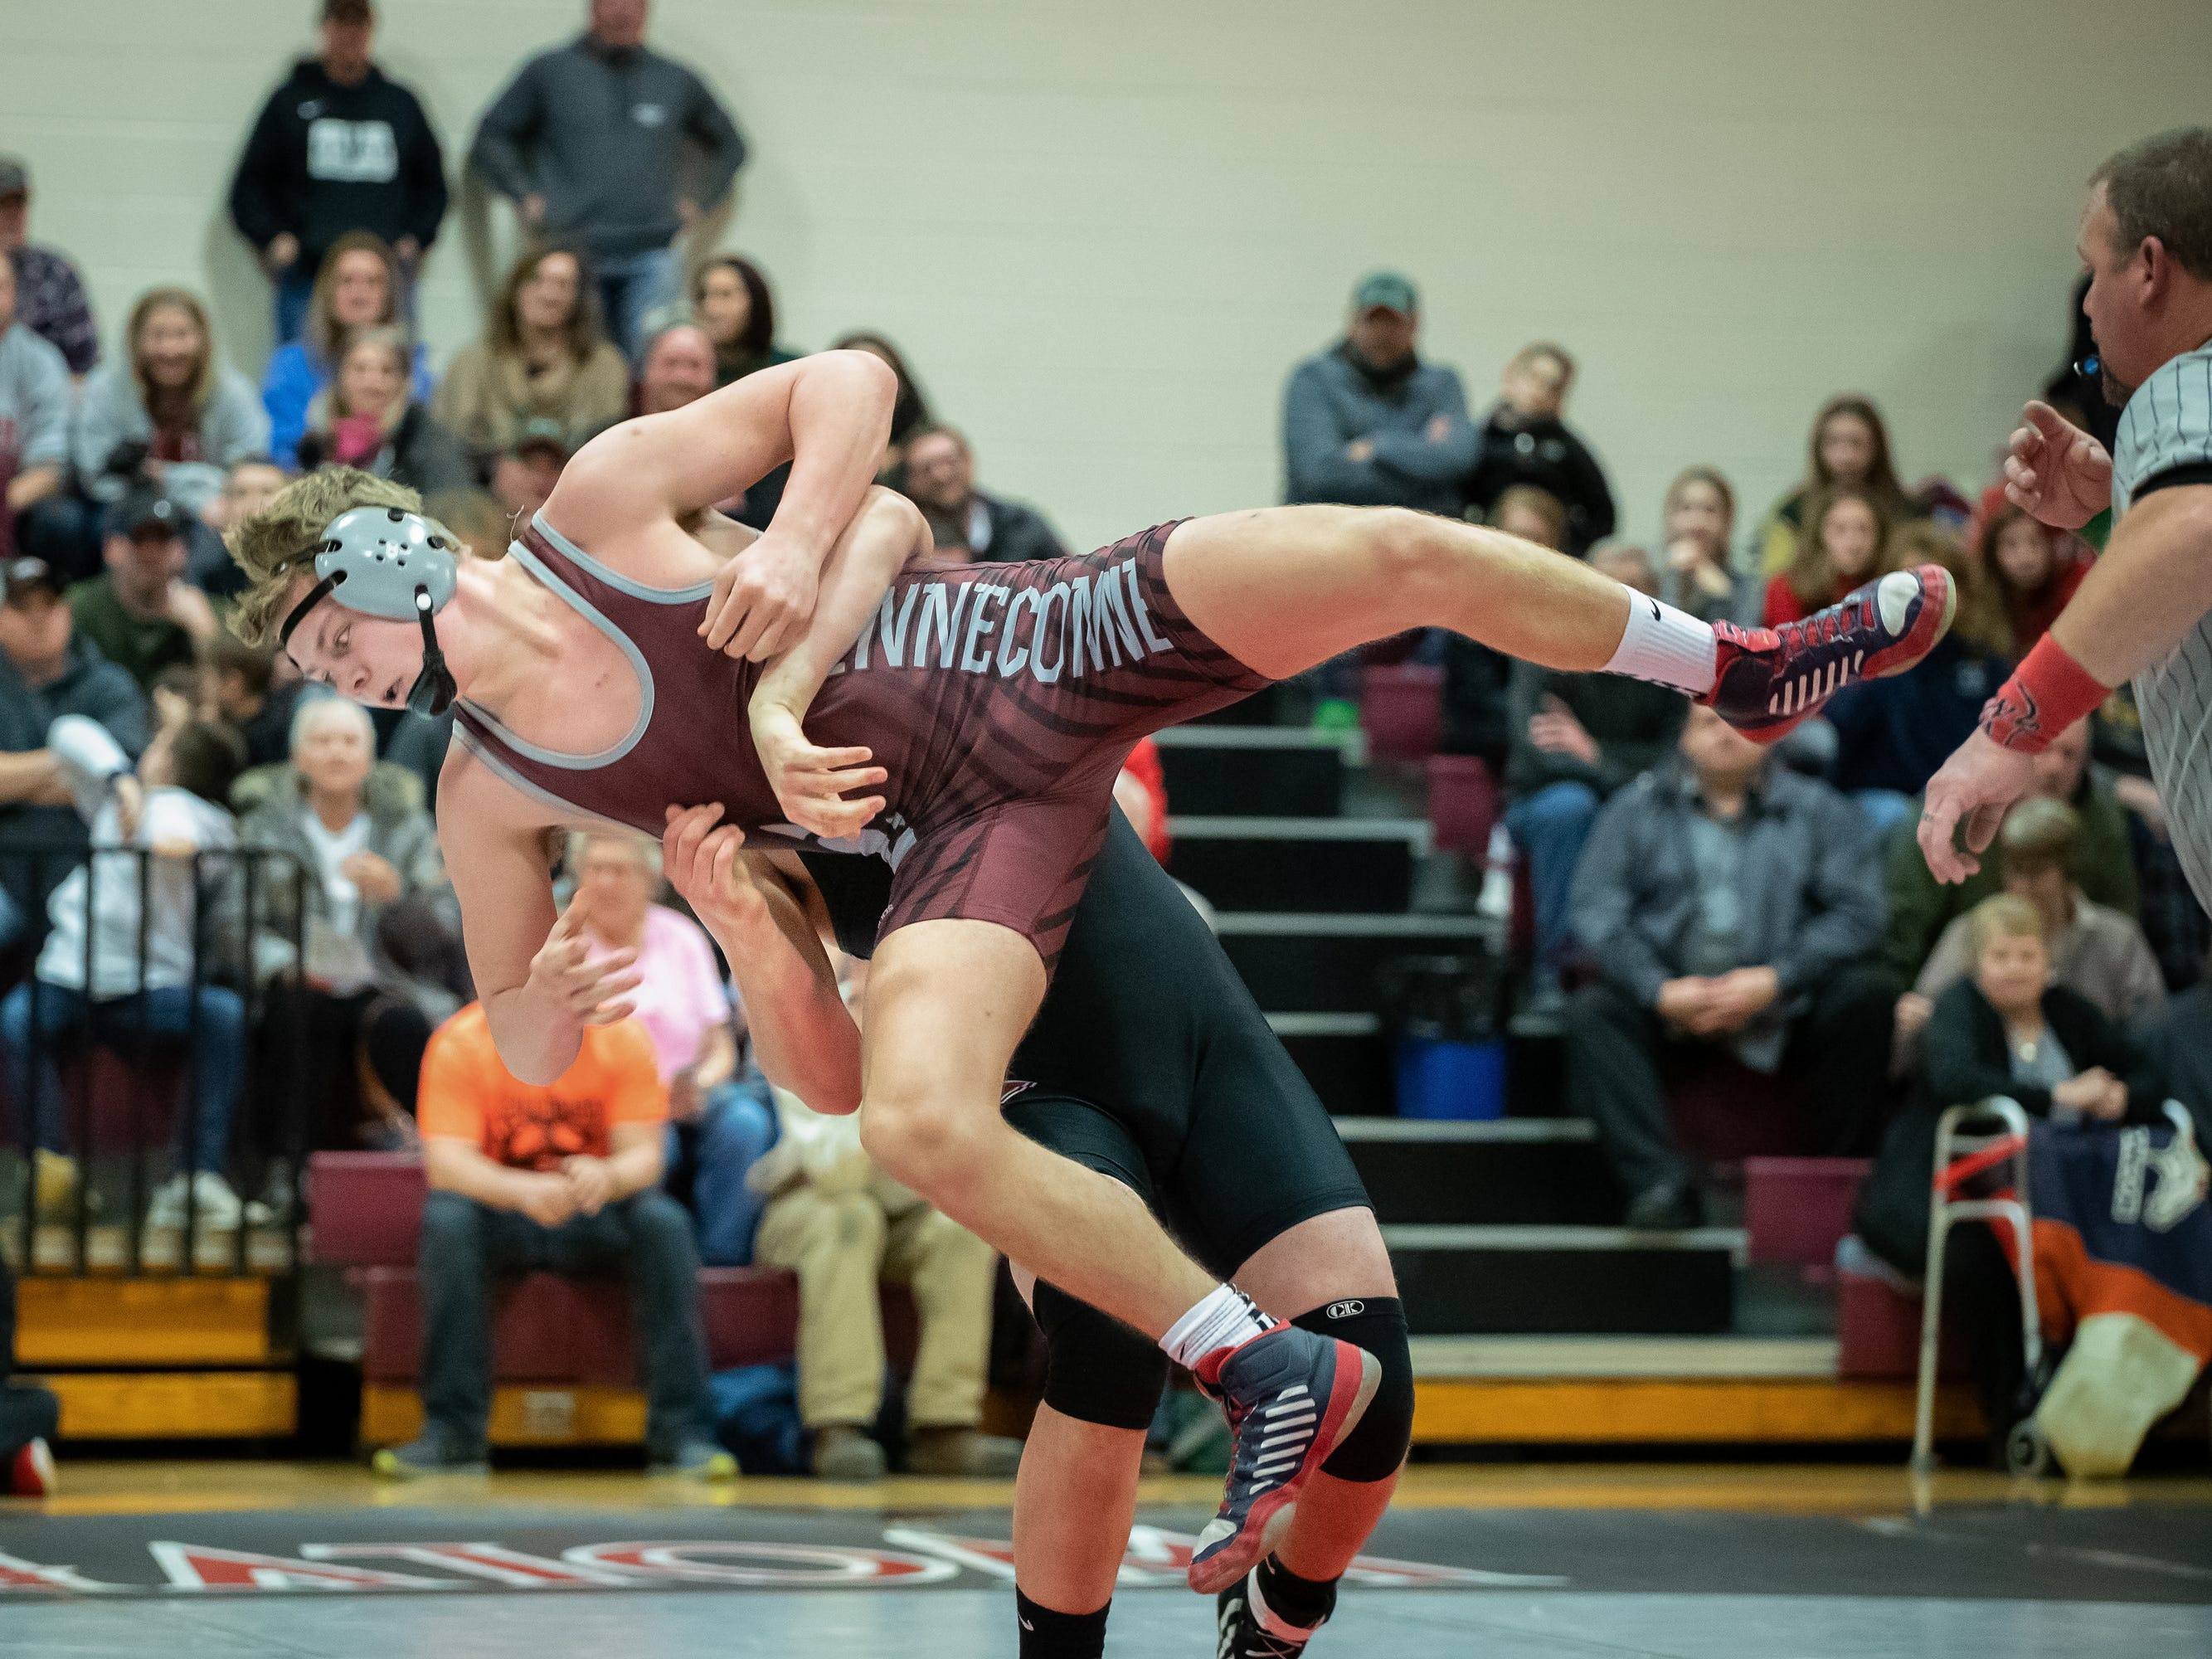 Dylan Krings of Winneconne wrestles Christopher Kurczek of Berlin in the 195-pound weight class. The Winneconne Wolves hosted the Berlin Indians in an East Central Conference wrestling match Thursday, Jan. 10, 2019.